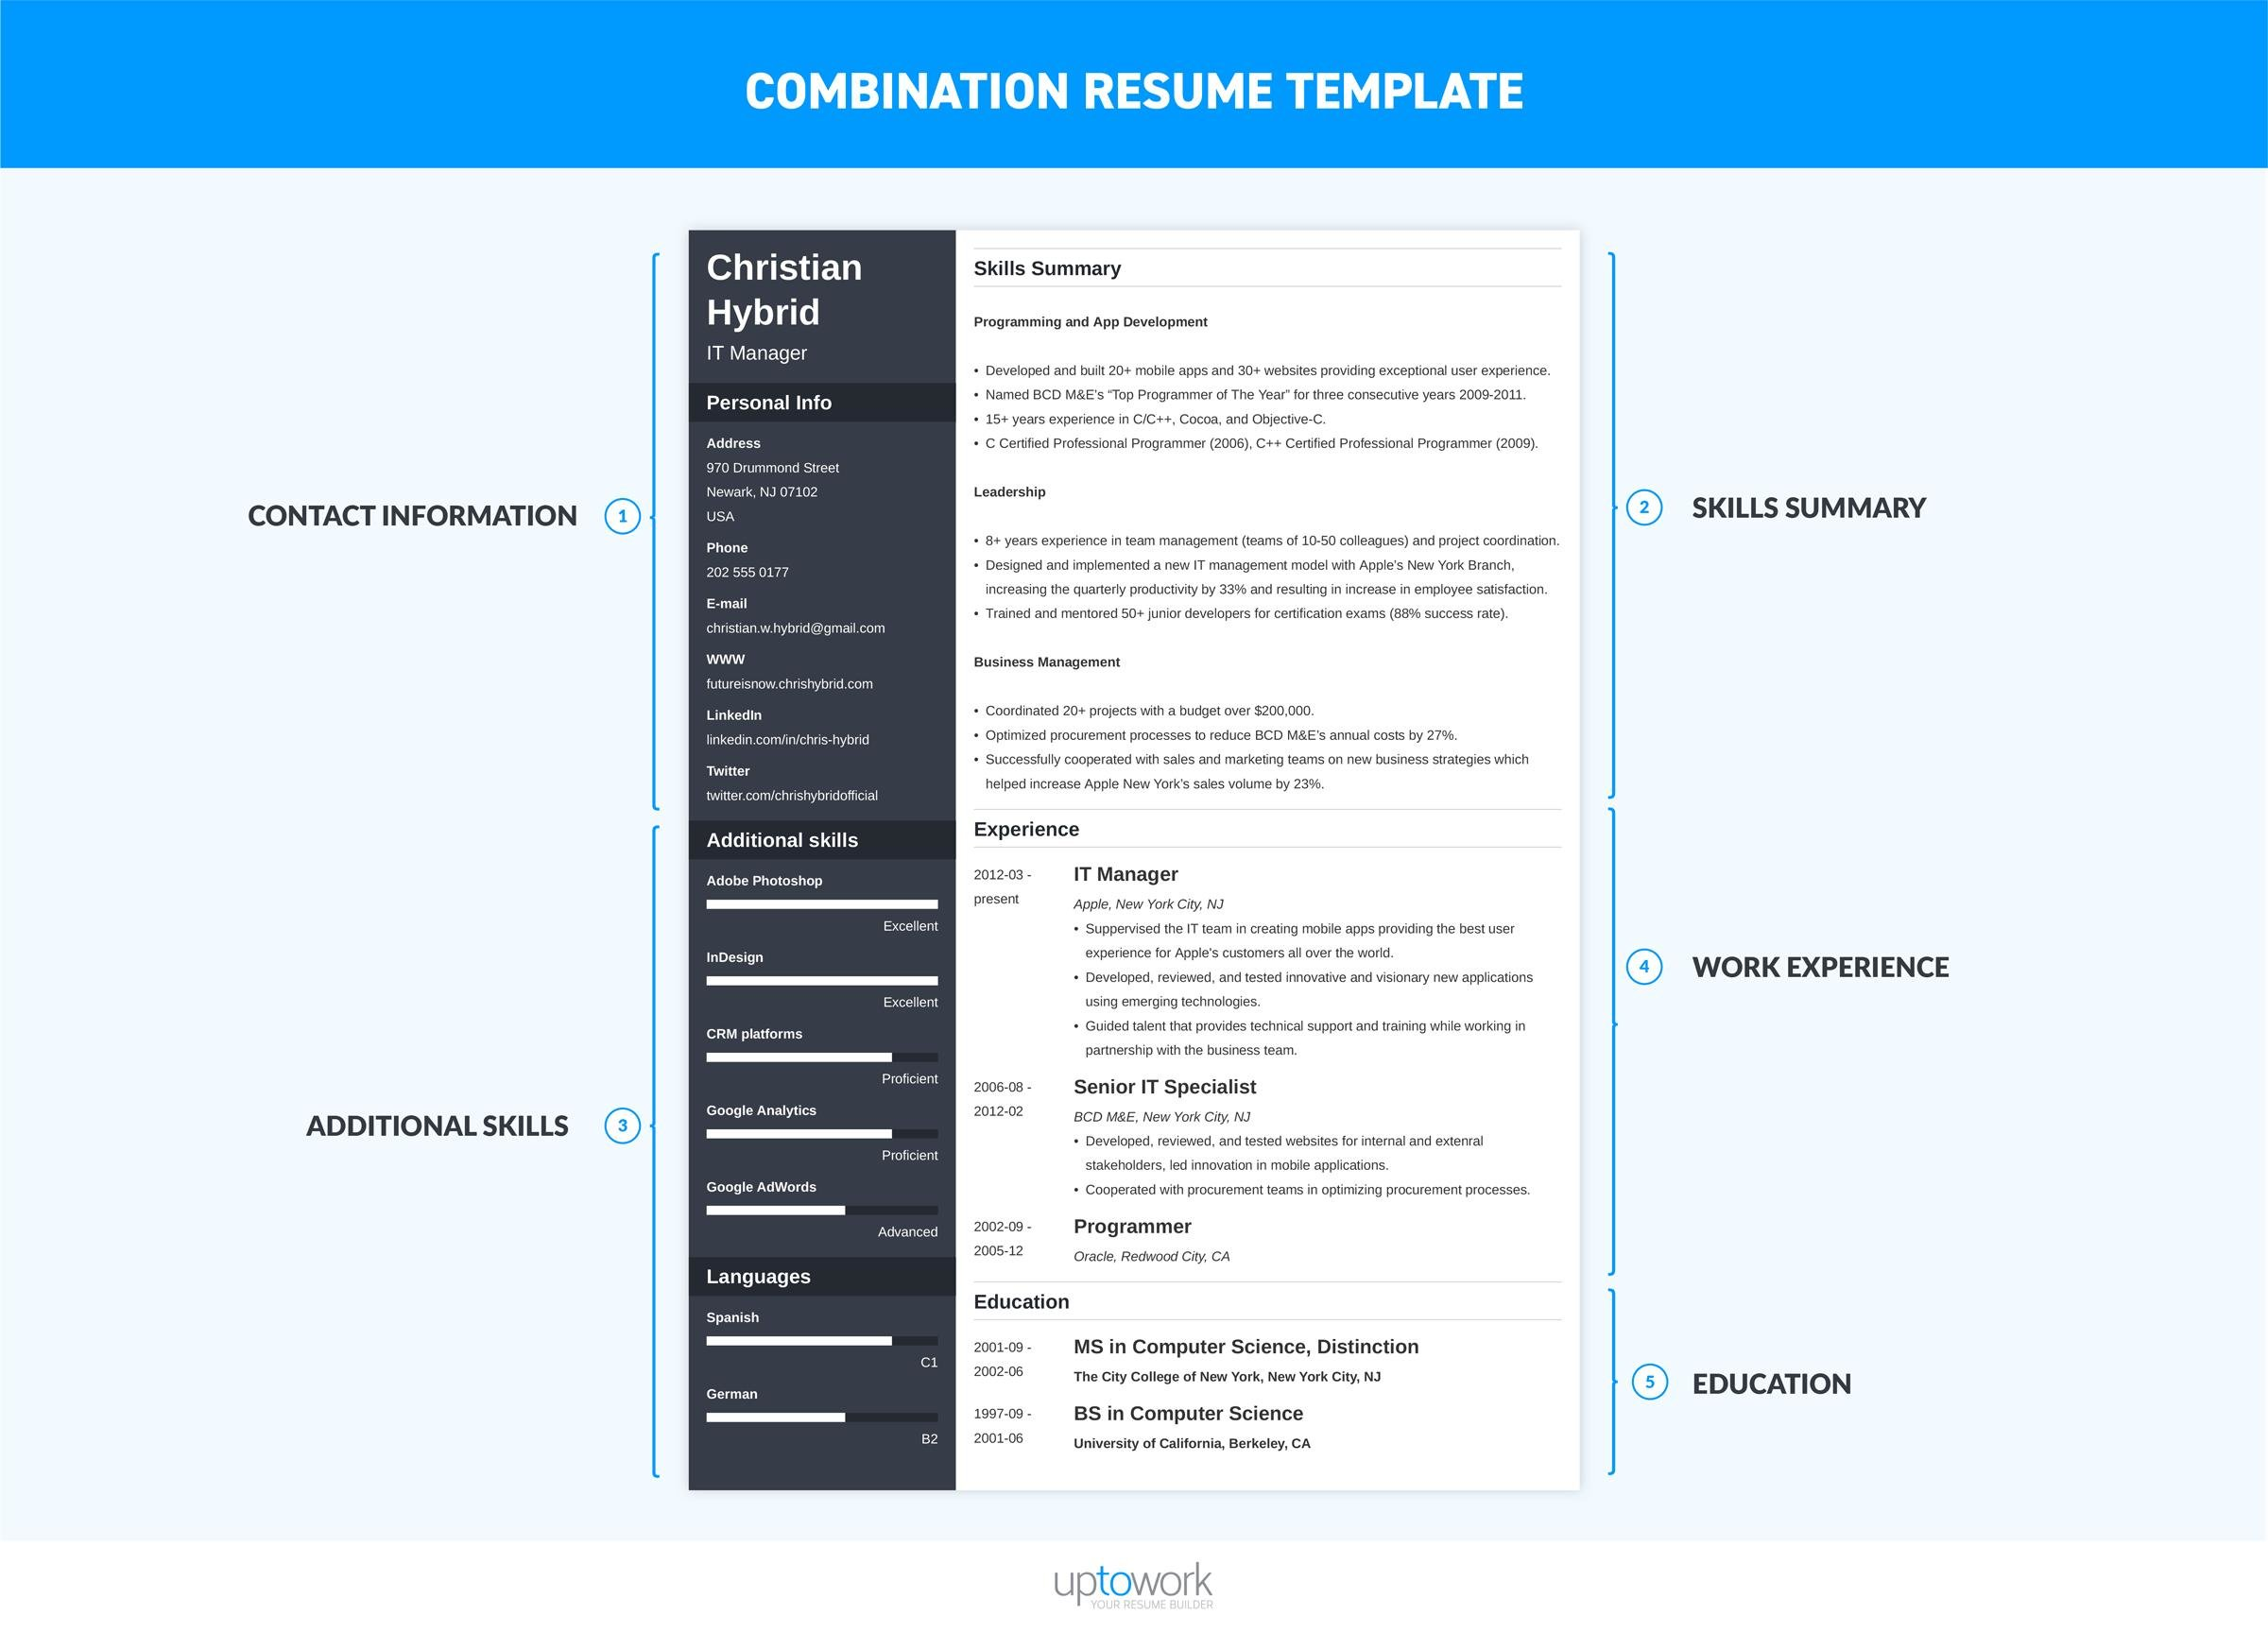 Combination resume template 5 examples complete guide how to write an effective combination resume and what sections to include thecheapjerseys Gallery